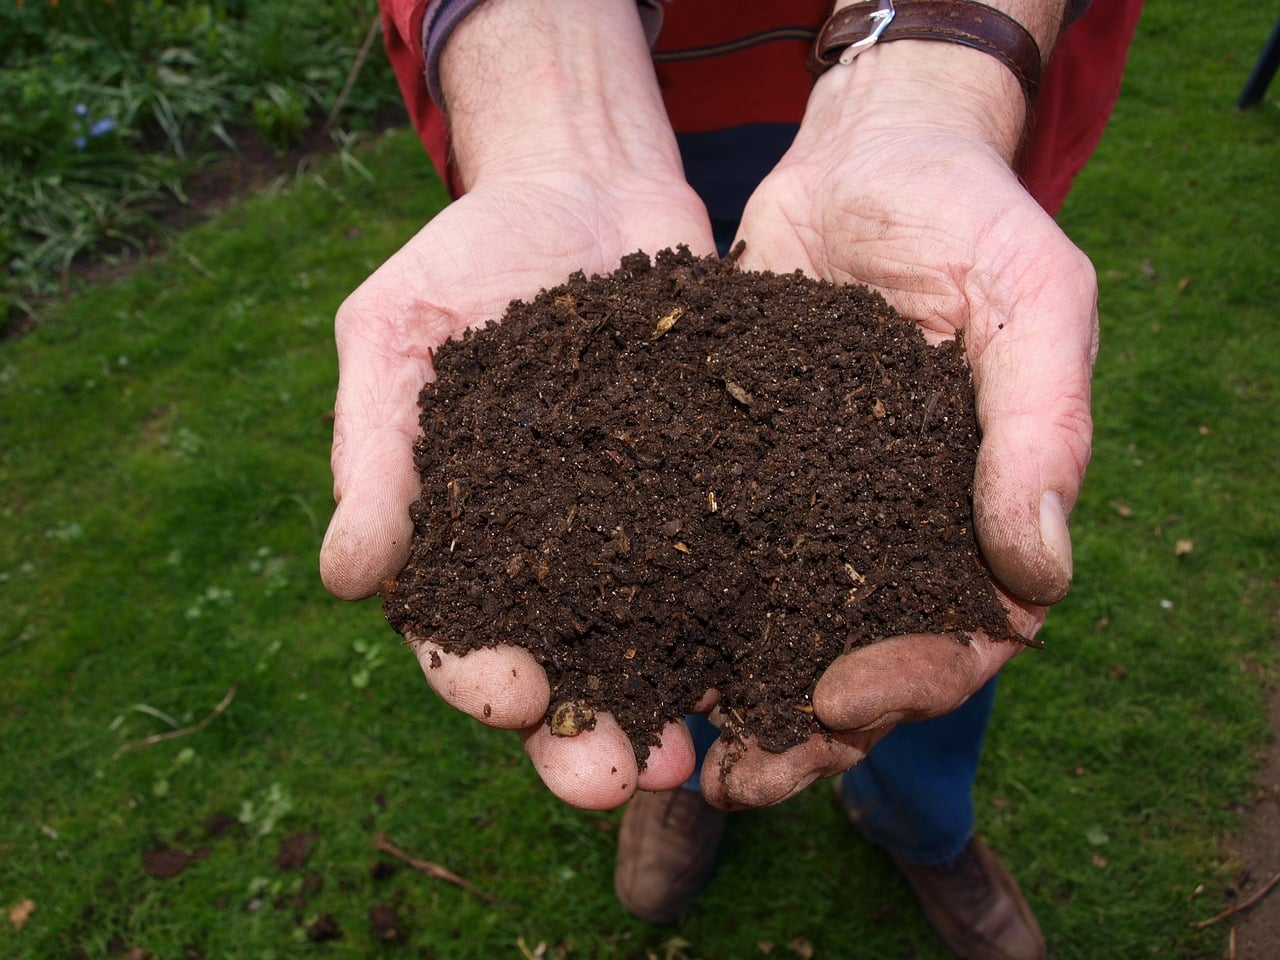 composting is a great way to reduce waste